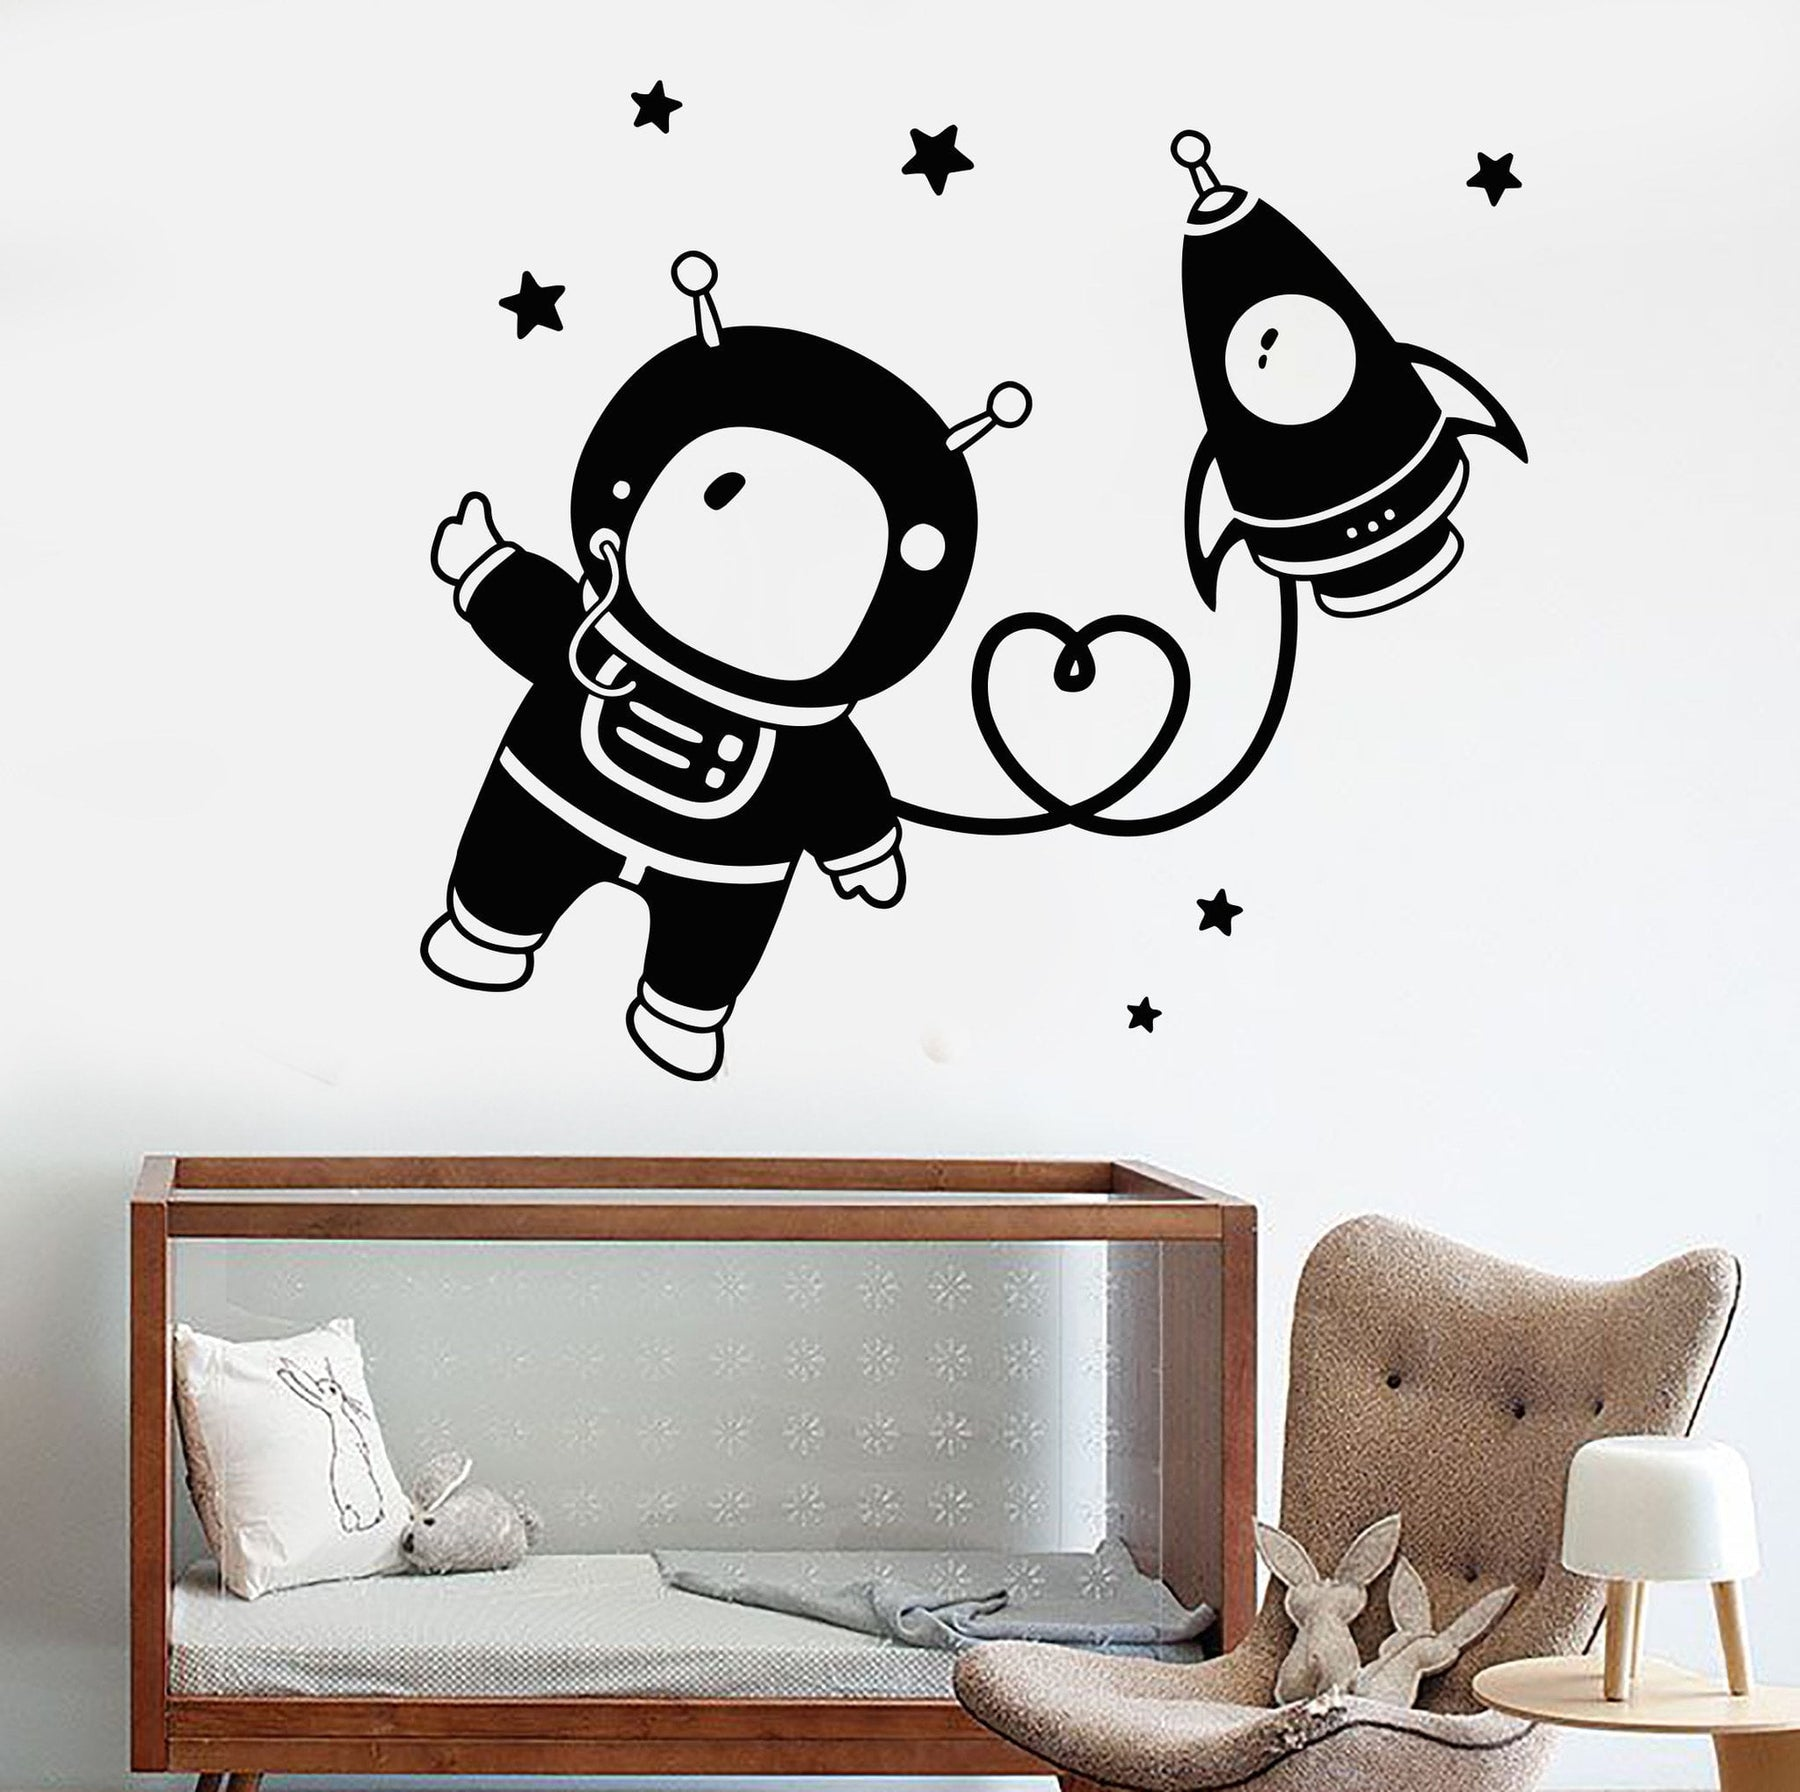 1.4 Space Children Sticker Set Space Stickers 200 pcs in roll Roll Stickers for Classroom 9 Vibrant Photos for Kids